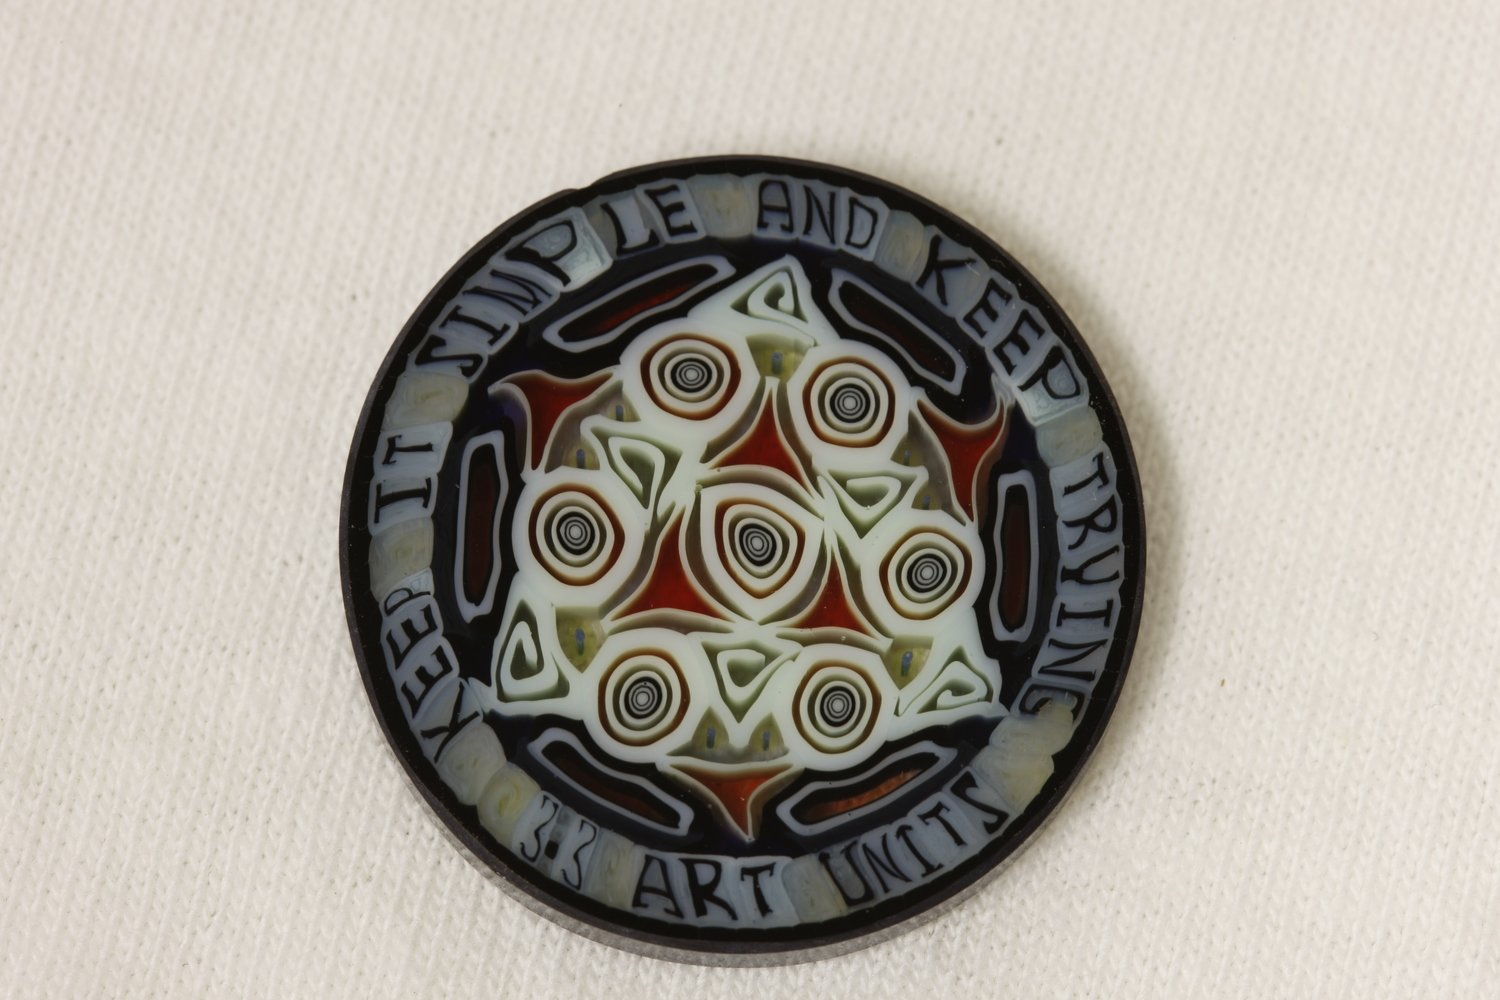 'Keep It Simple And Keep Trying' 3.3 Art Unit Project 33 Glass Murrini Coin